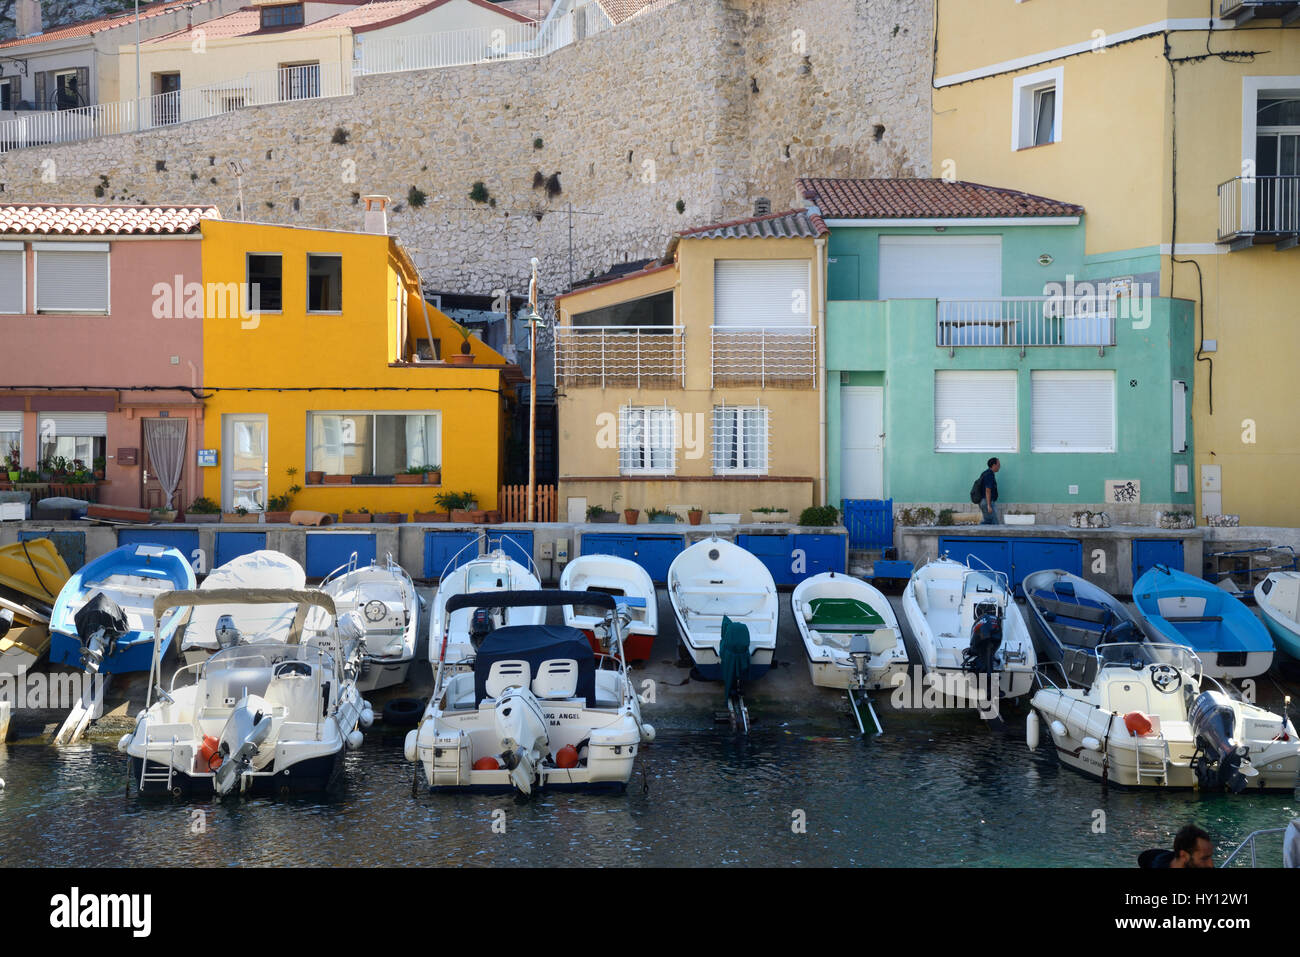 Fishing Port & Colourful Fishermen's Houses at the Vallon des Auffes on the Corniche Marseille or Marseilles France Stock Photo